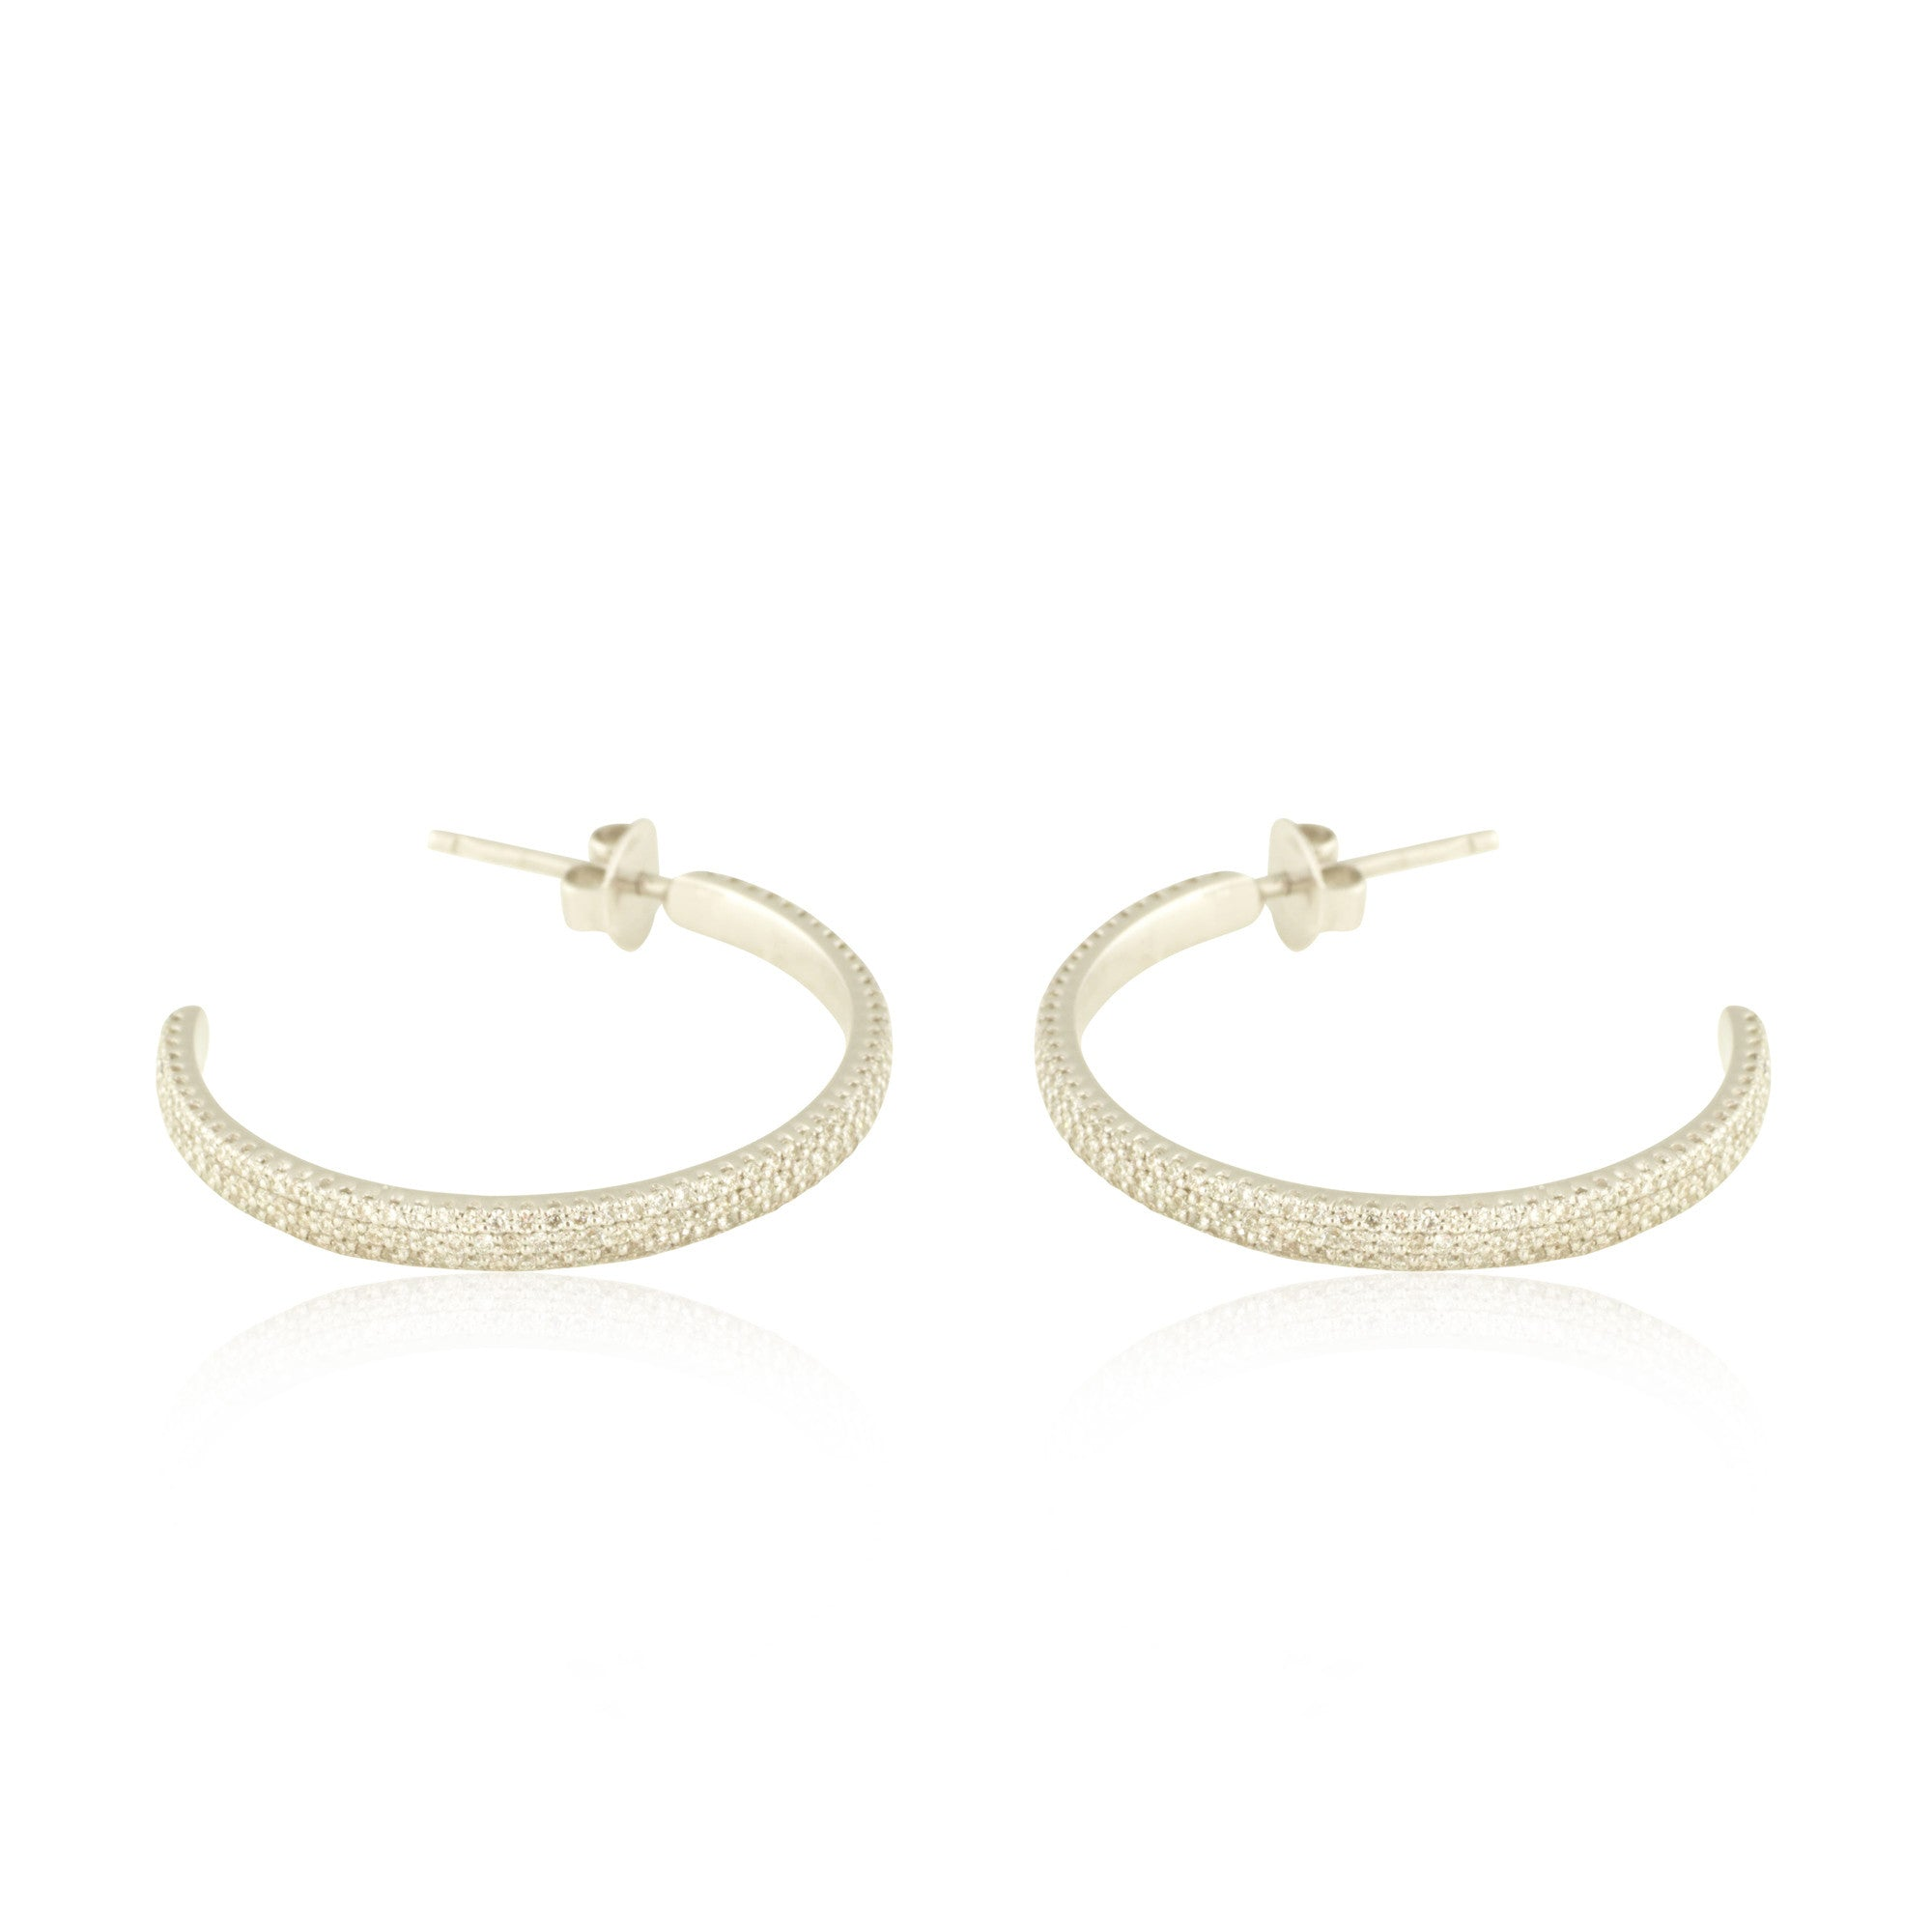 Micro Set White Gold Hoops